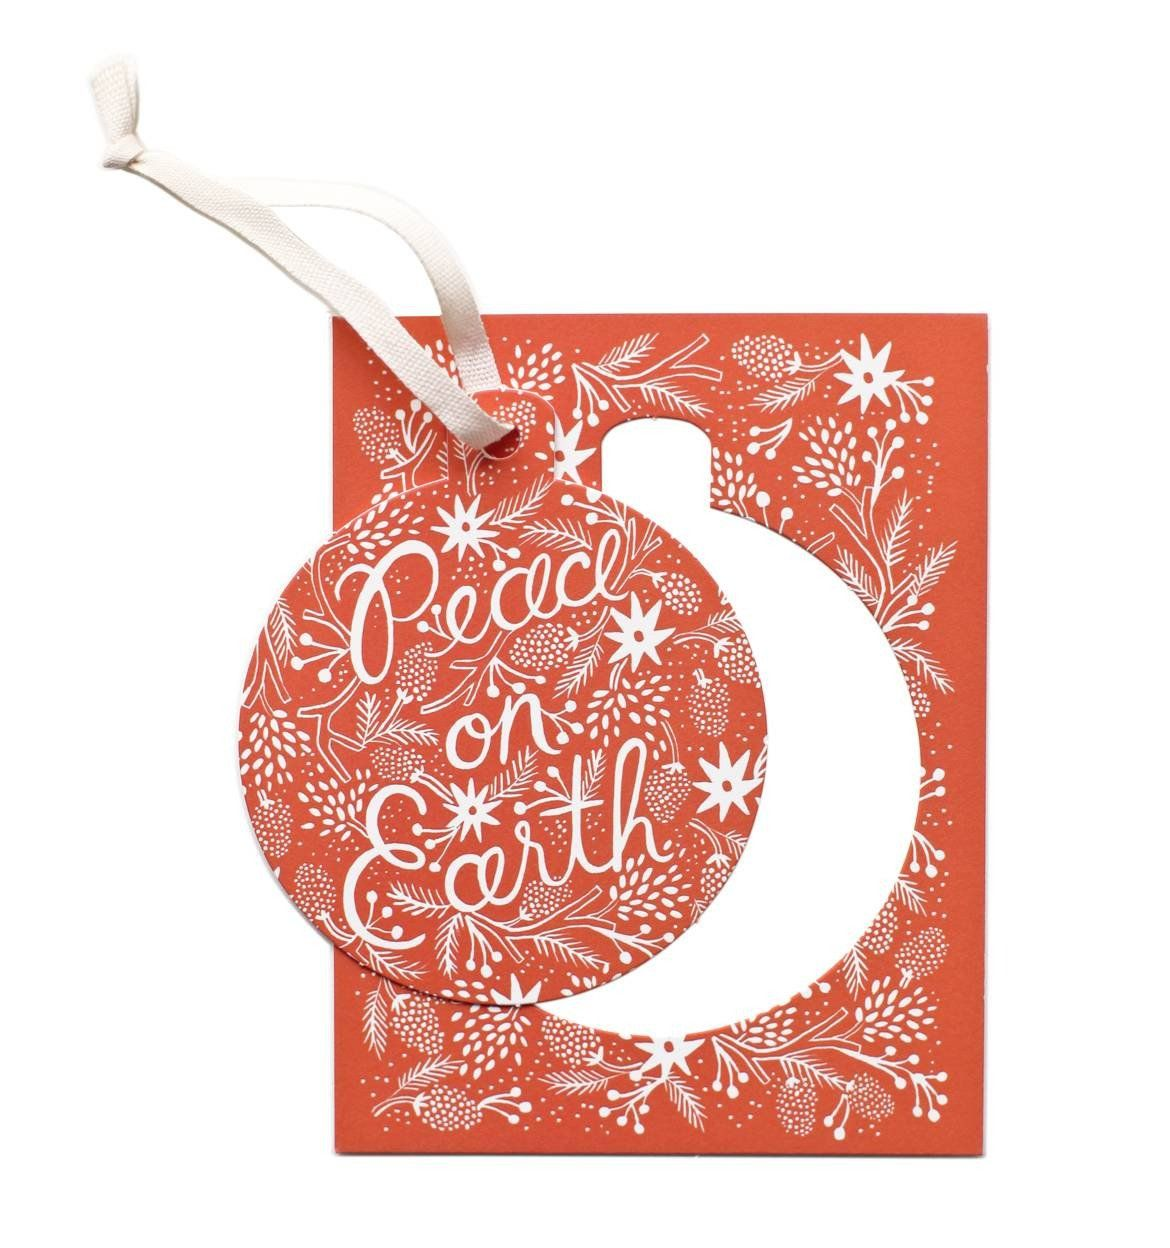 berry peace on earth ornament card box set box sets peace and